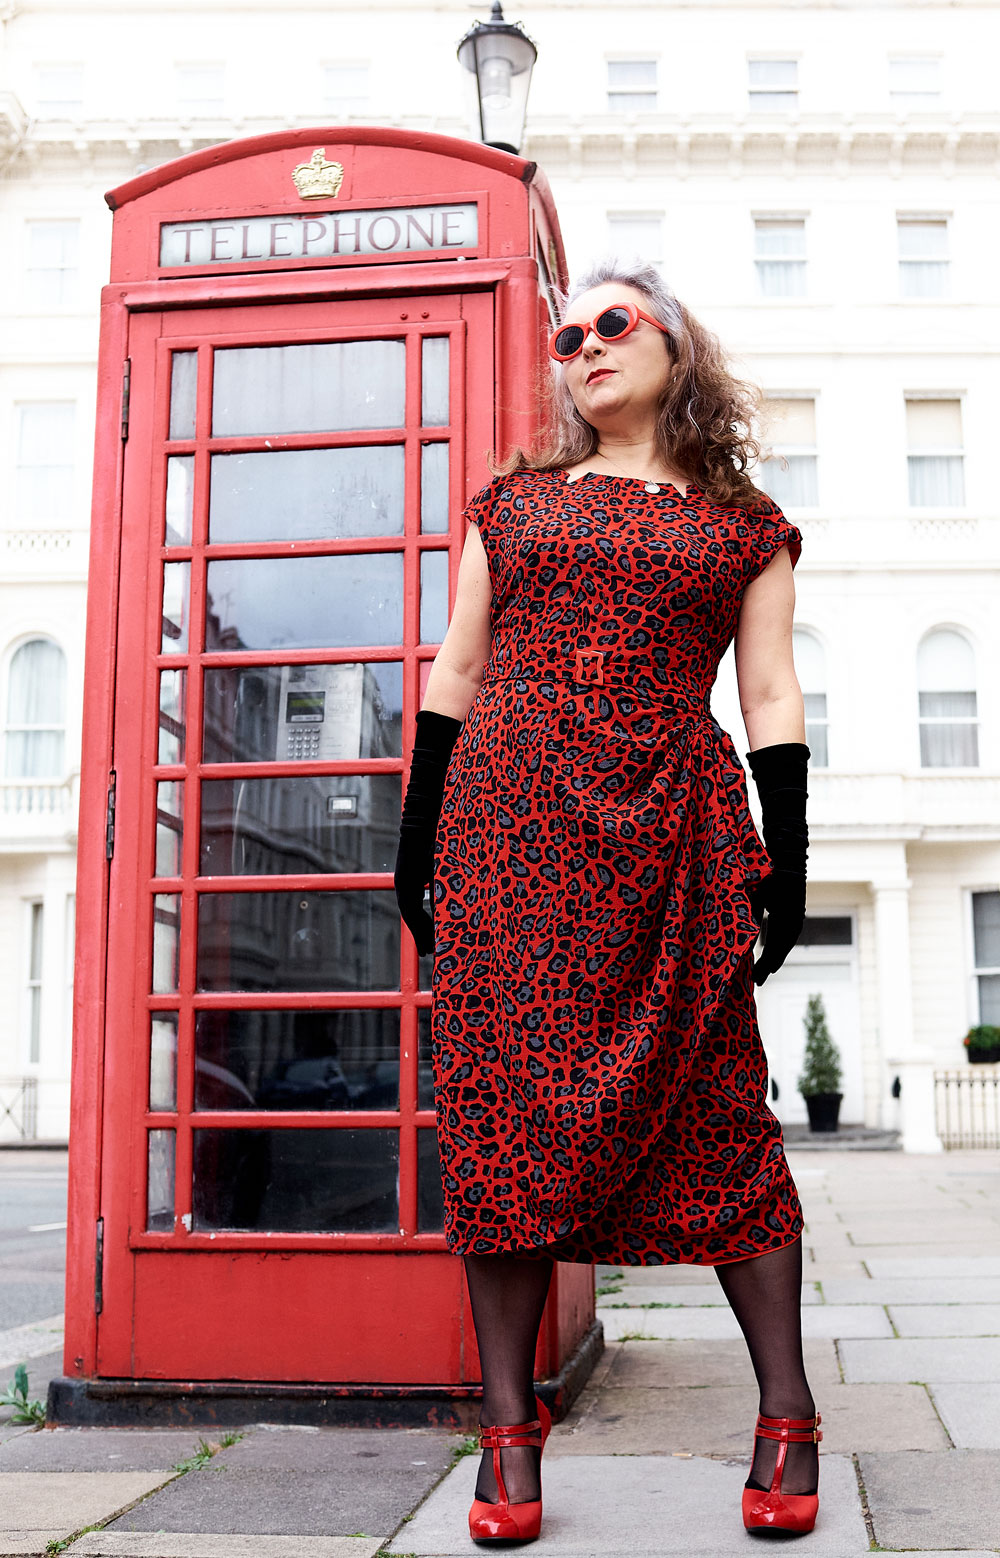 B5880 dress and London telephone box